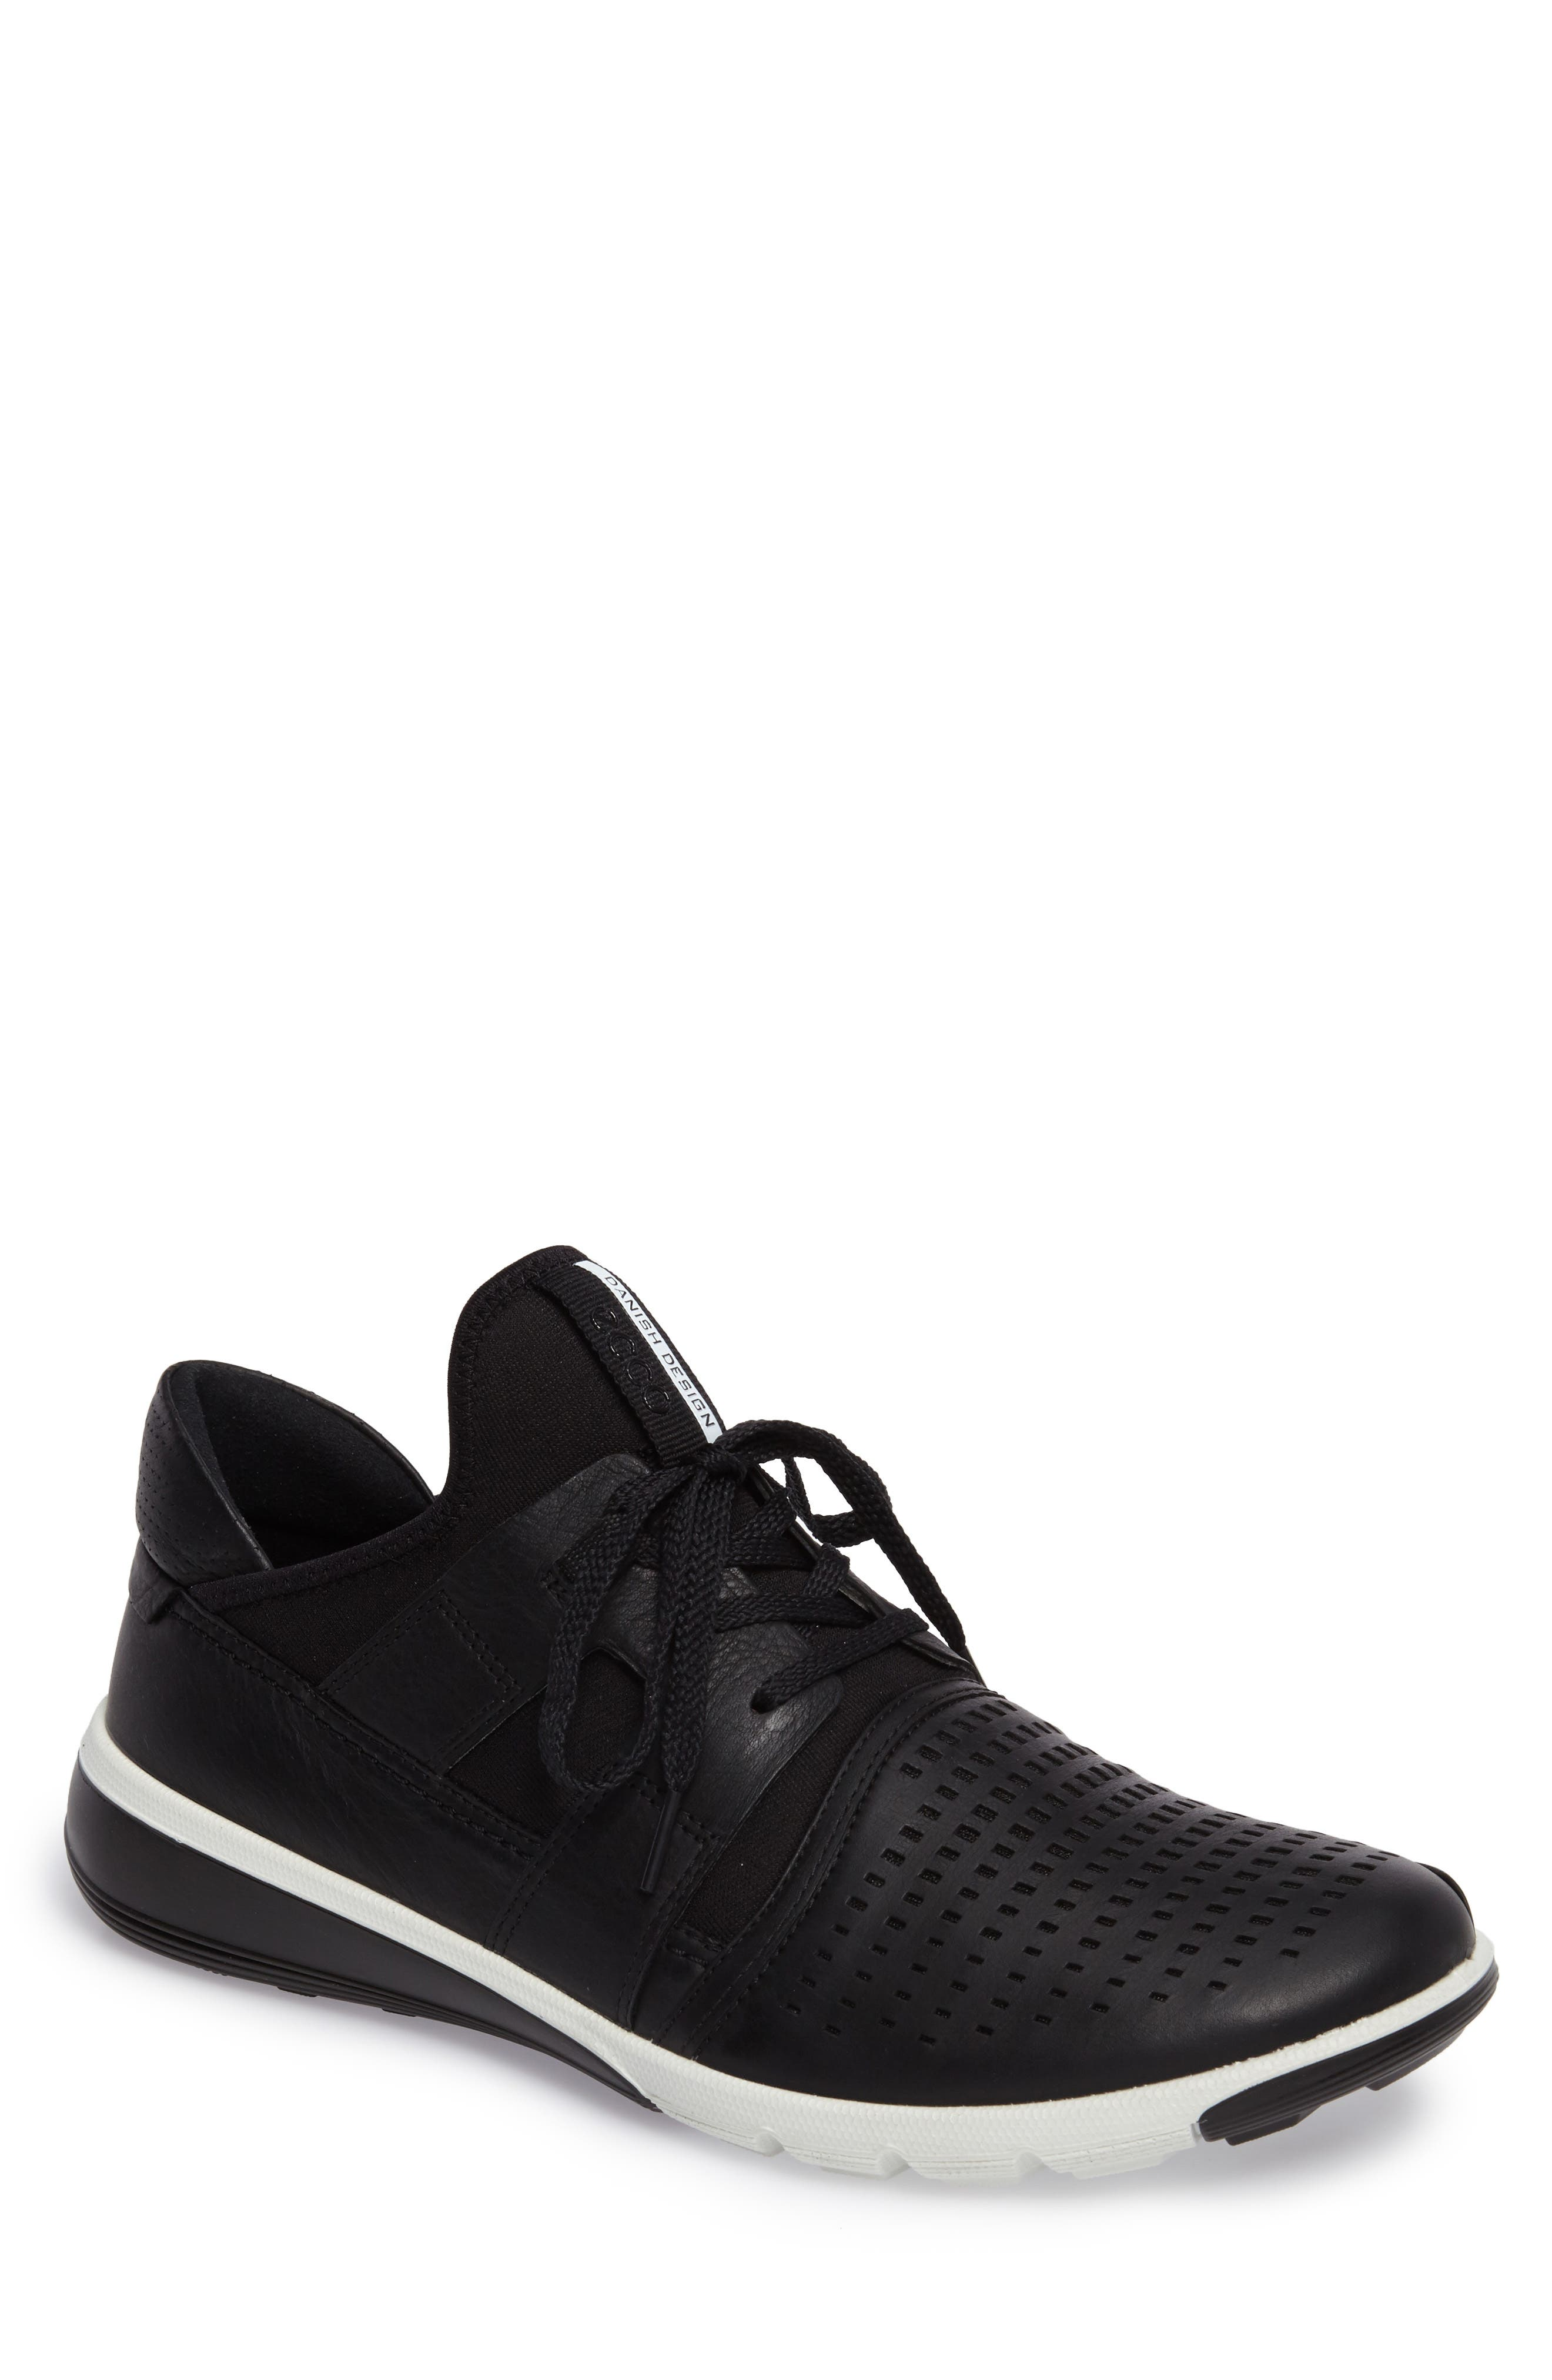 Main Image - ECCO Intrinsic 2 Sneaker (Men)